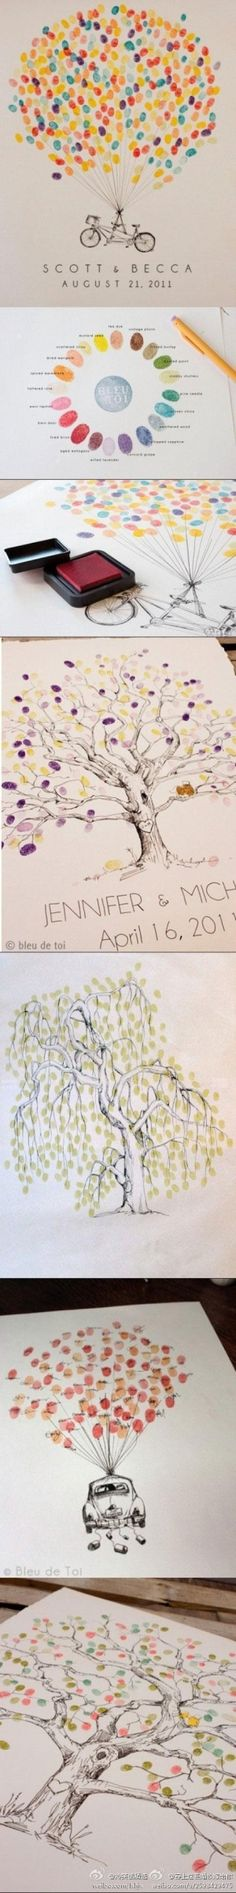 guestbook for an UP party??